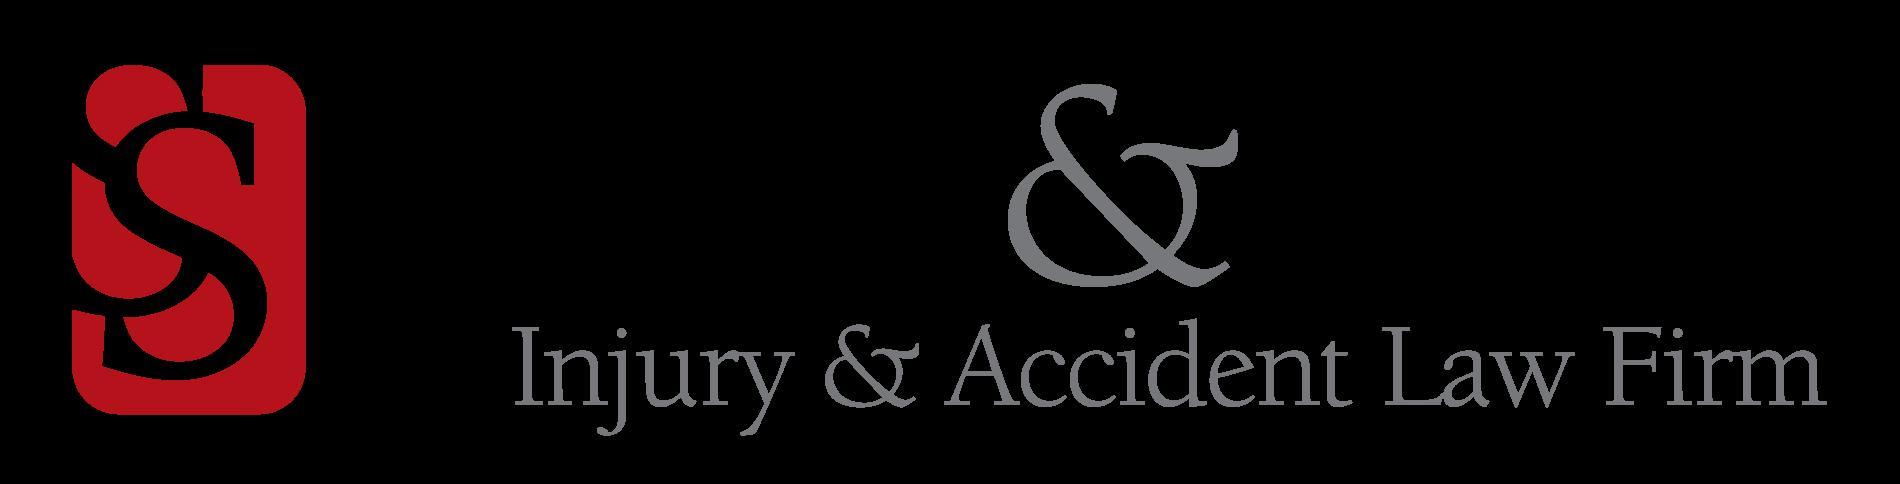 Sutliff & Stout, PLLC, Injury & Accident Law Firm